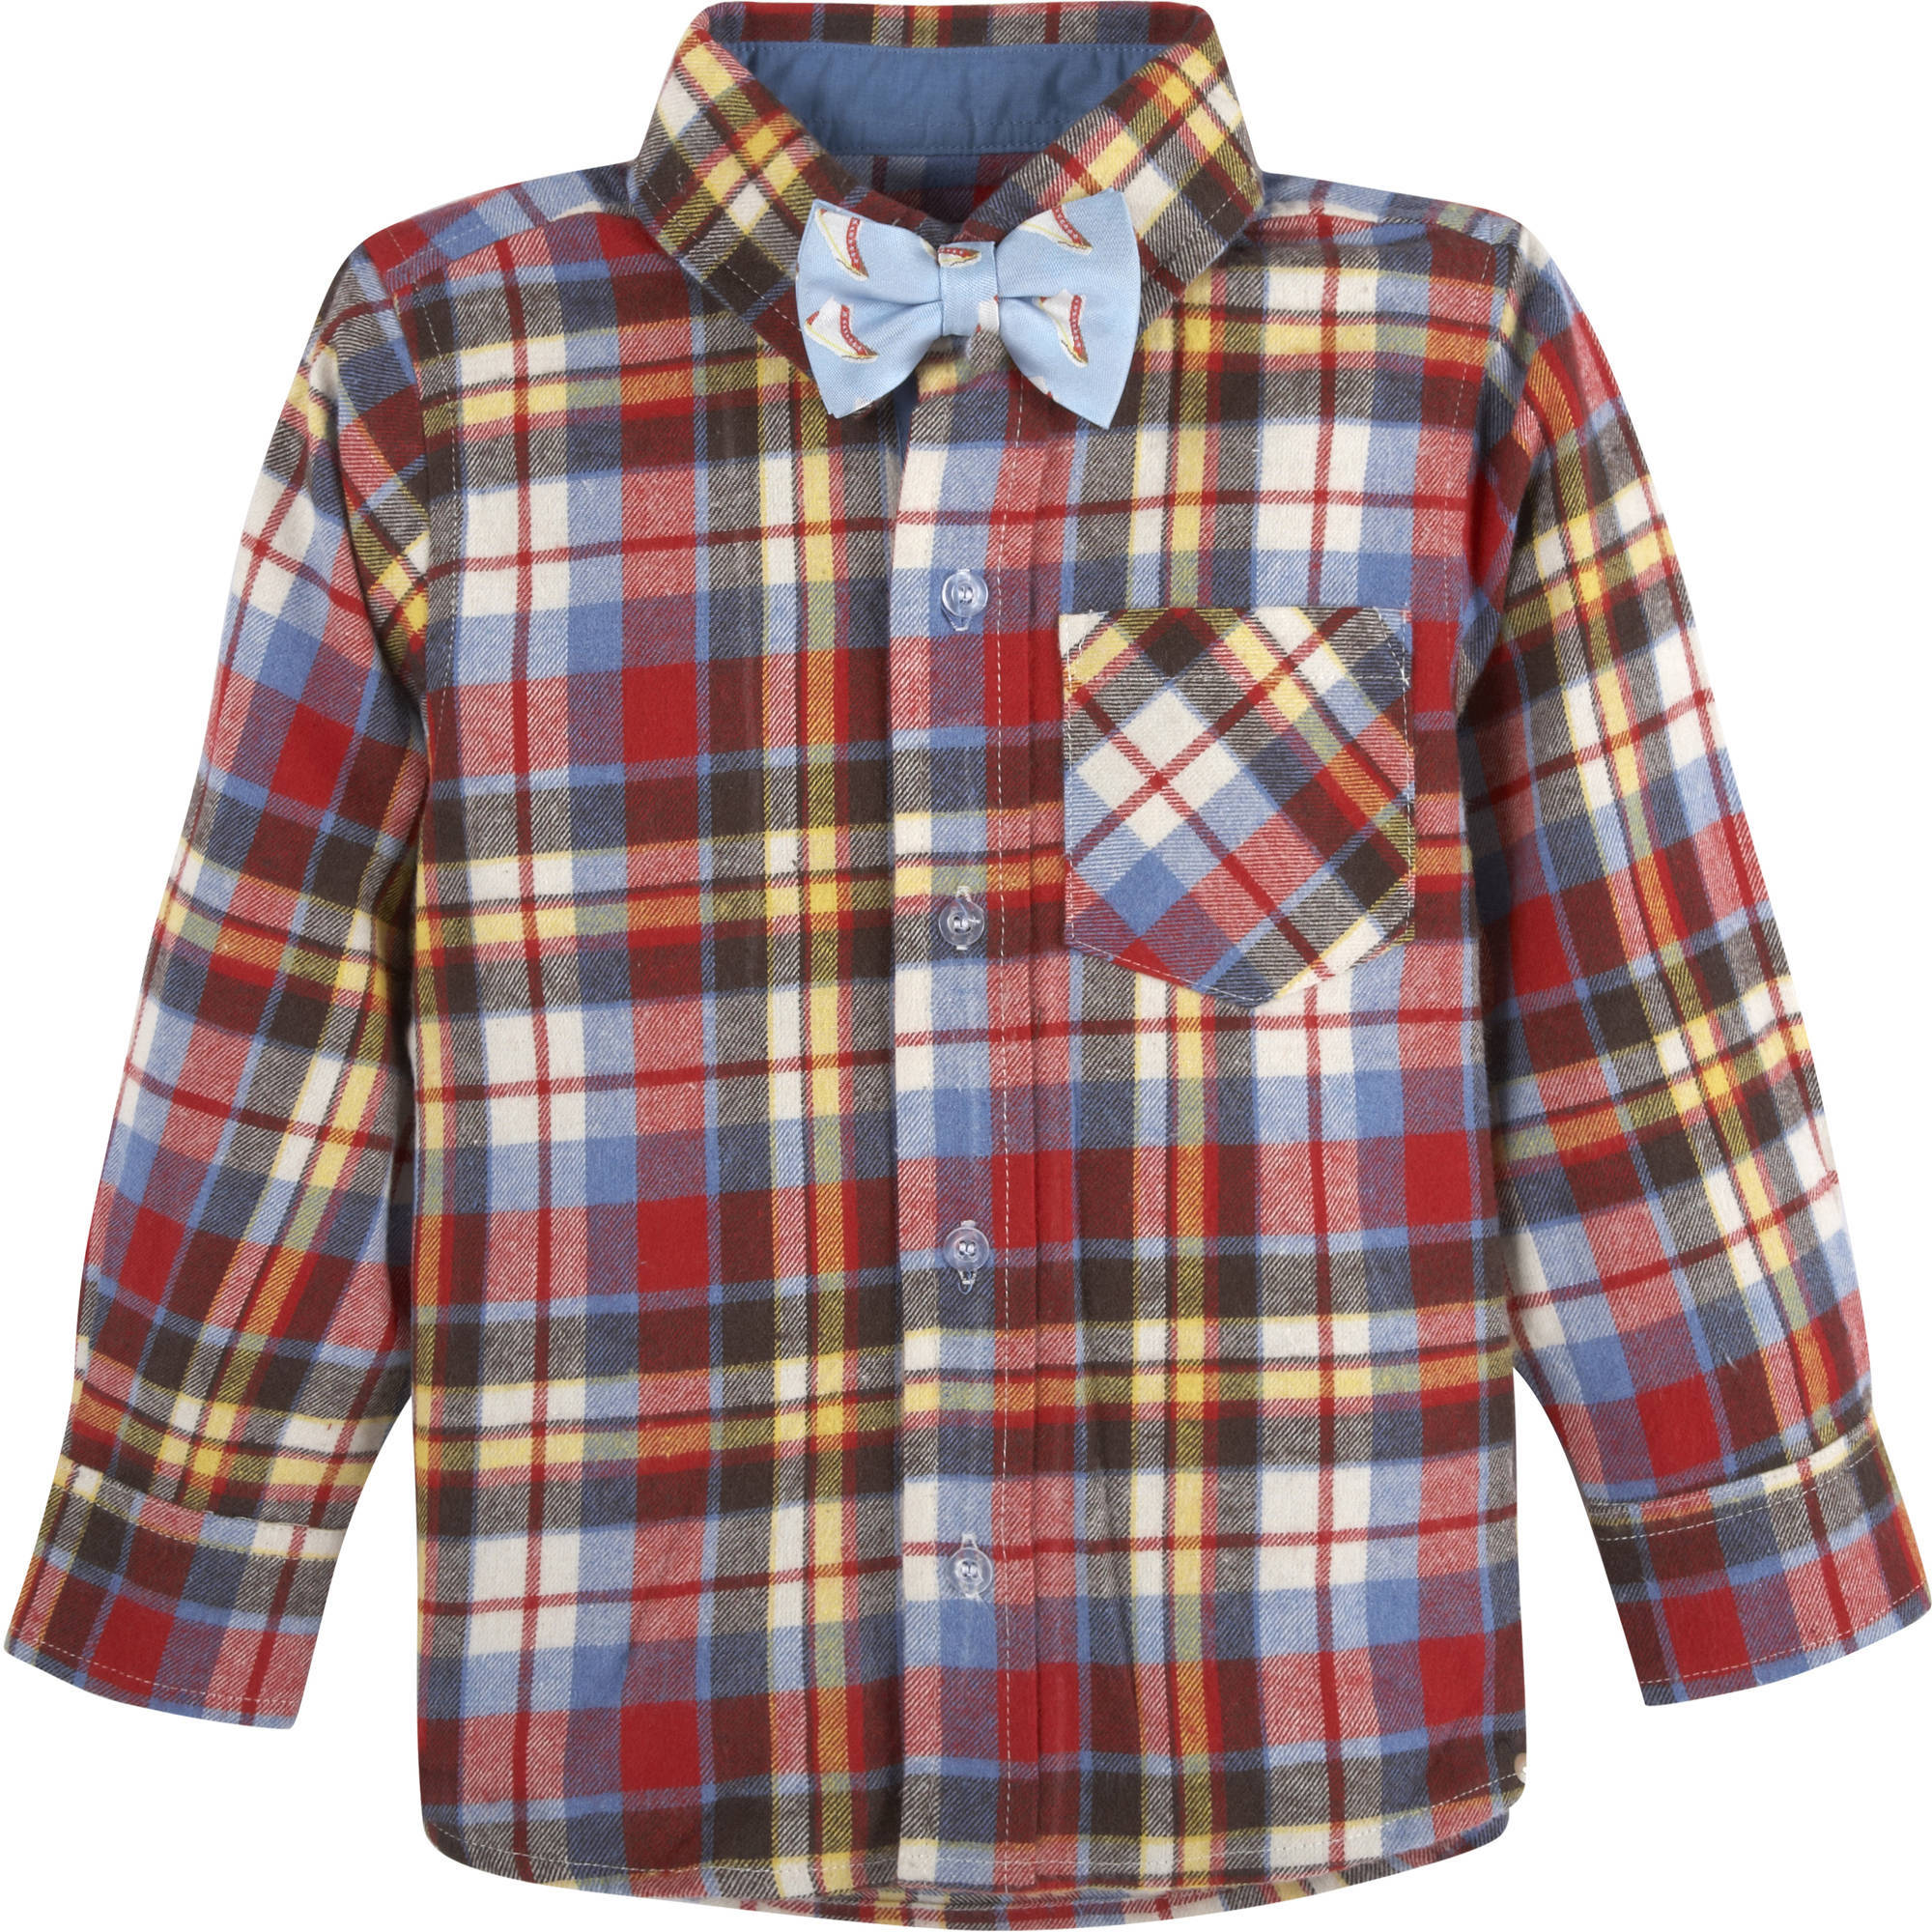 G-Cutee Baby Toddler Boy Flannel Plaid Shirt w/ Bowtie